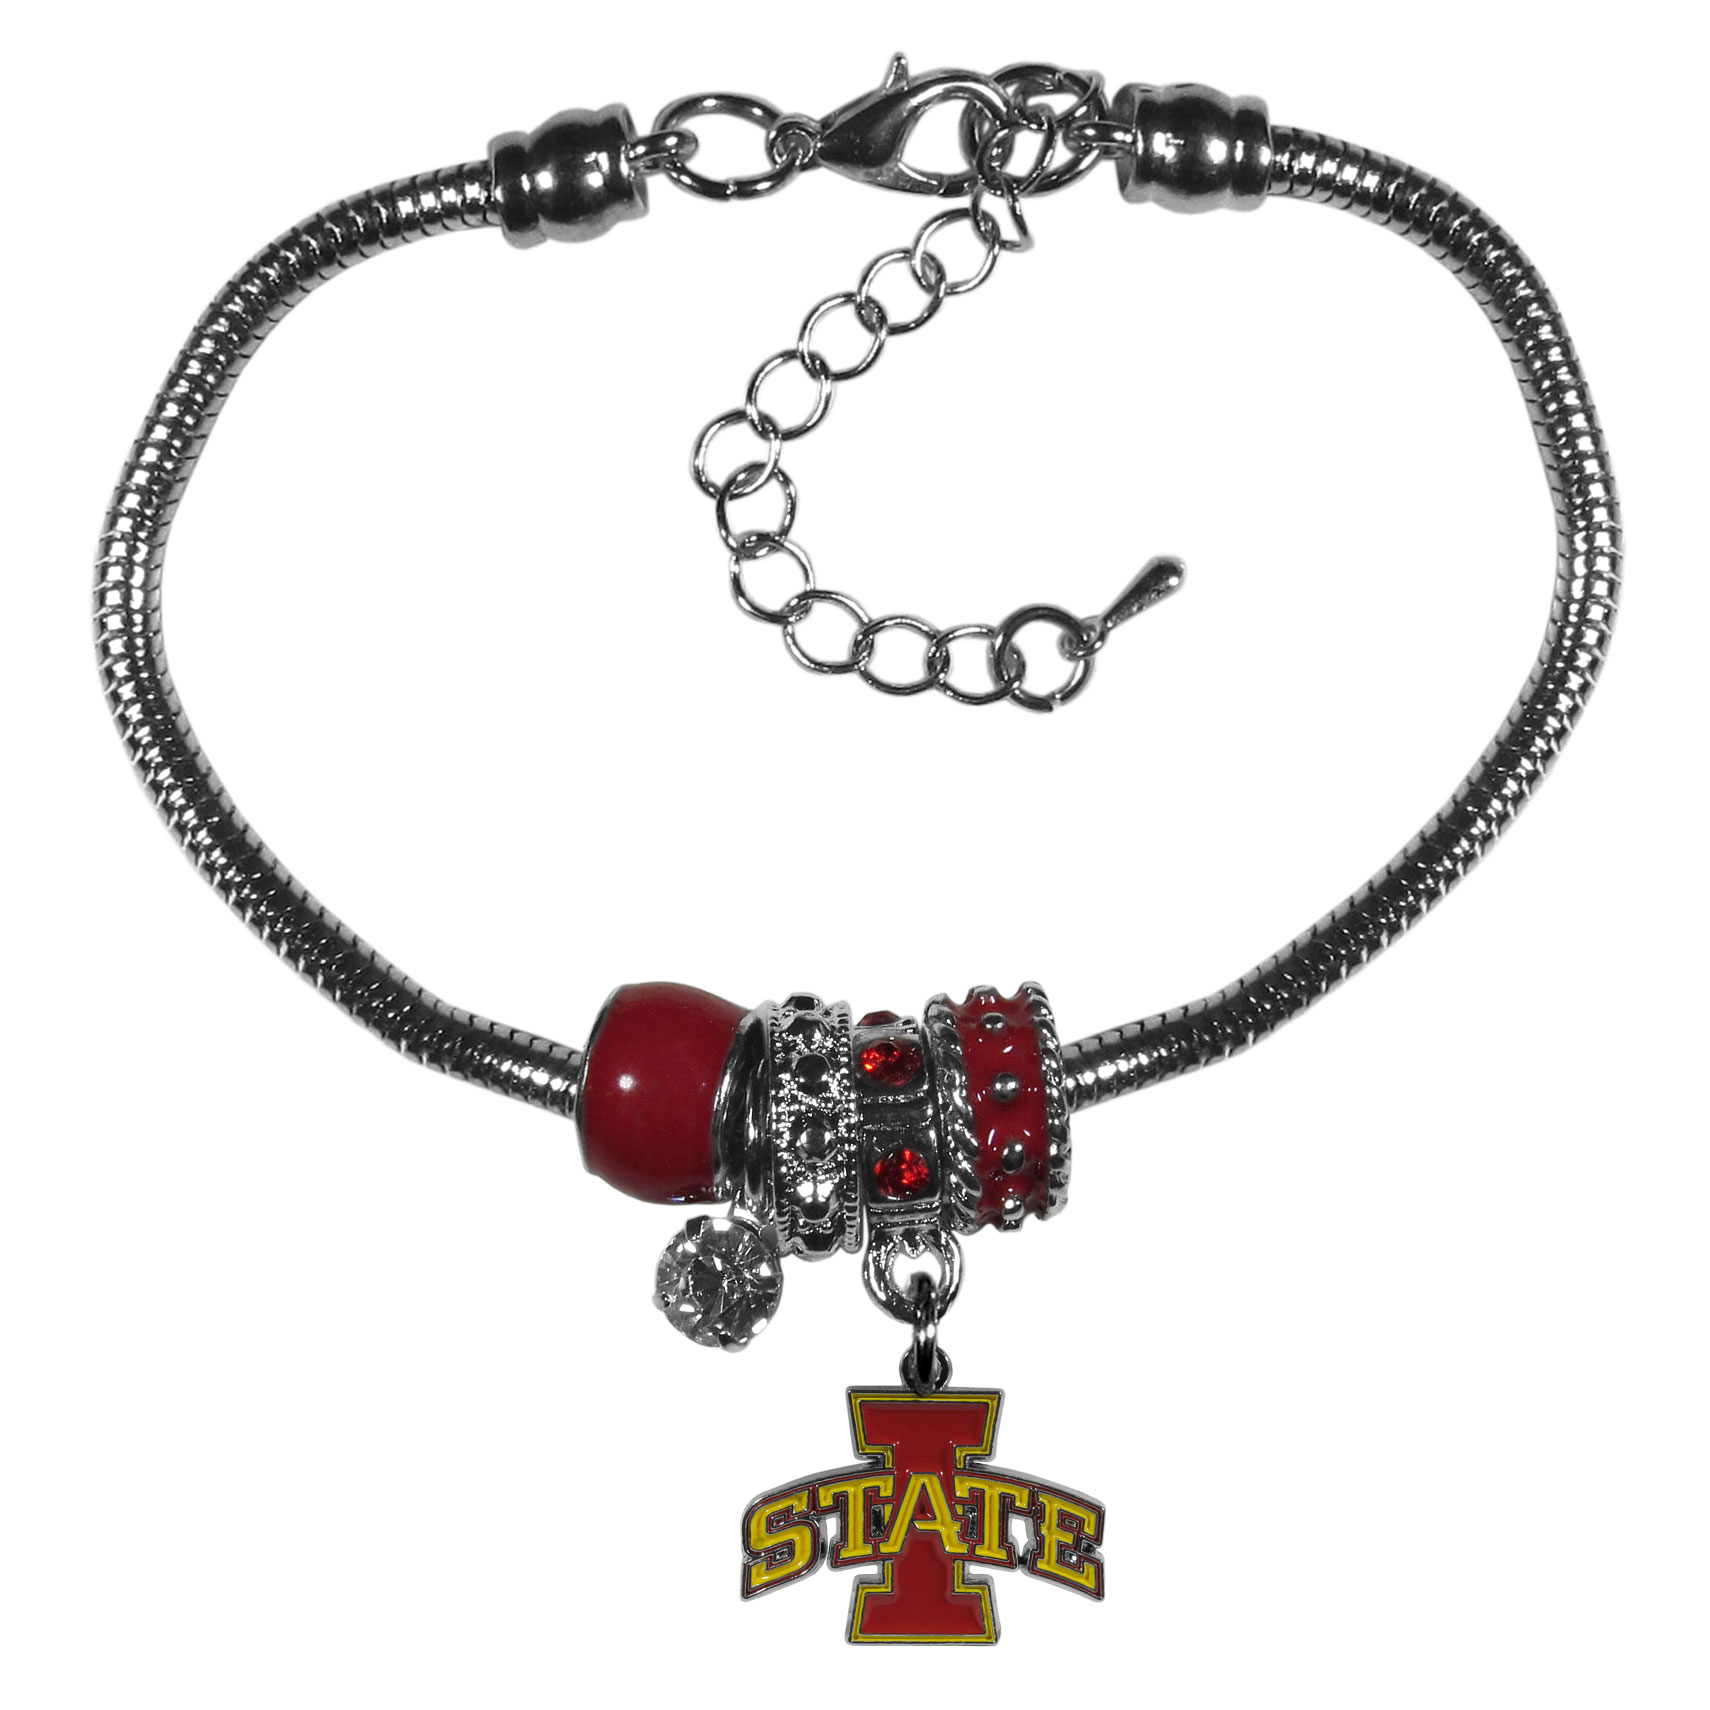 Iowa St. Cyclones Euro Bead Bracelet - We have combined the wildly popular Euro style beads with your favorite team to create our  Iowa St. Cyclones Euro bead bracelet. The 7.5 inch snake chain with 2 inch extender features 4 Euro beads with enameled team colors and rhinestone accents with a high polish, nickel free charm and rhinestone charm. Perfect way to show off your team pride.